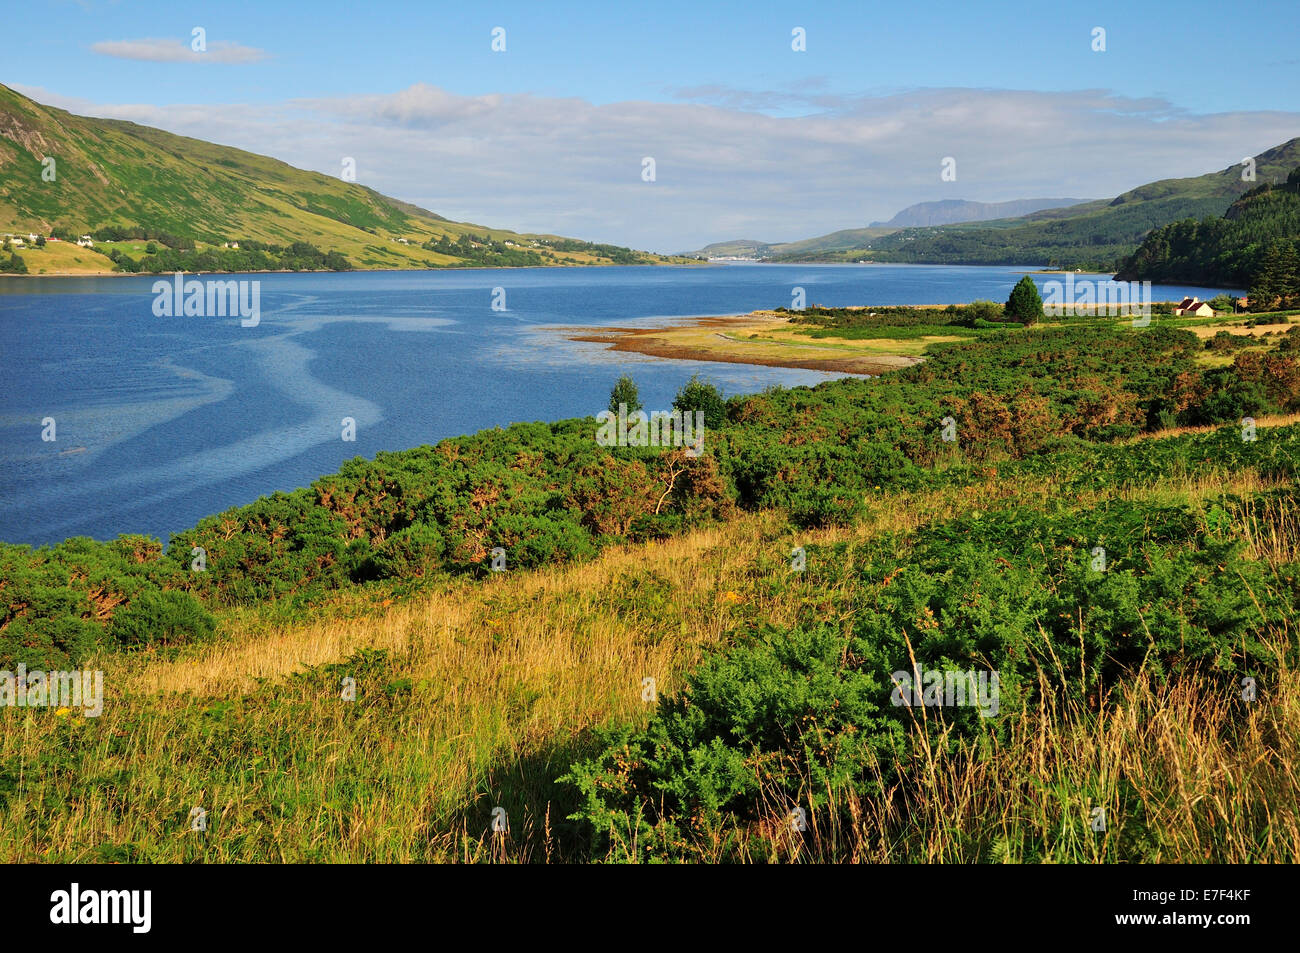 Loch Broom towards Ullapool, Caithness, Sutherland and Ross, Scottish Highlands, Scotland, United Kingdom - Stock Image